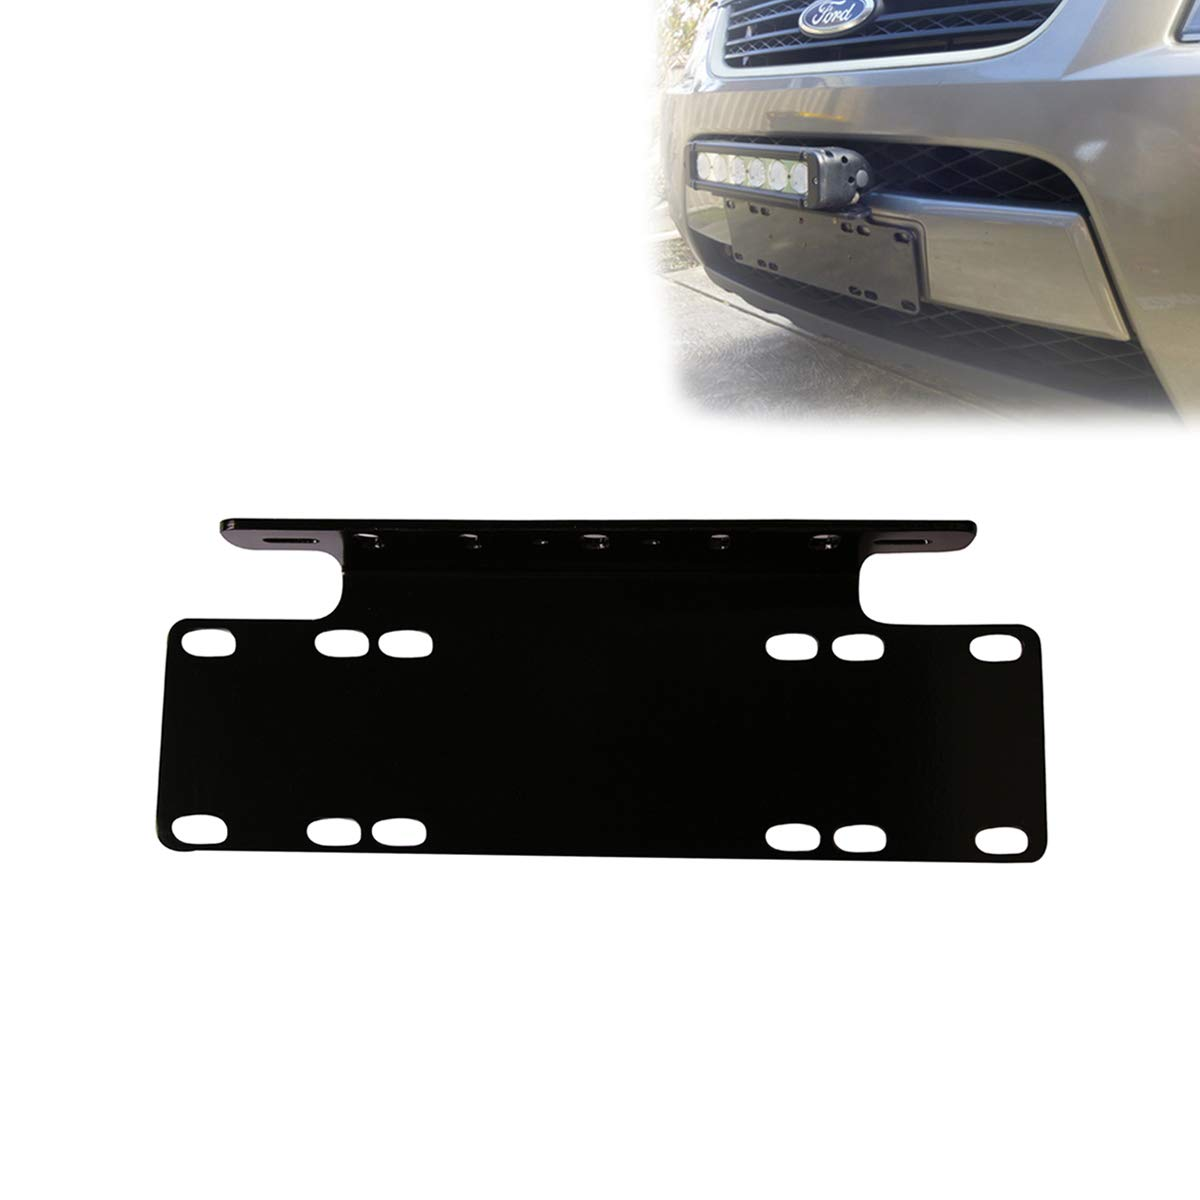 WOWLED Universal License Number Plate Frame Mounting Bracket Holder for Offroad Driving LED Light Bar and Work Lamps Black, Truck 4X4 Wow Factor